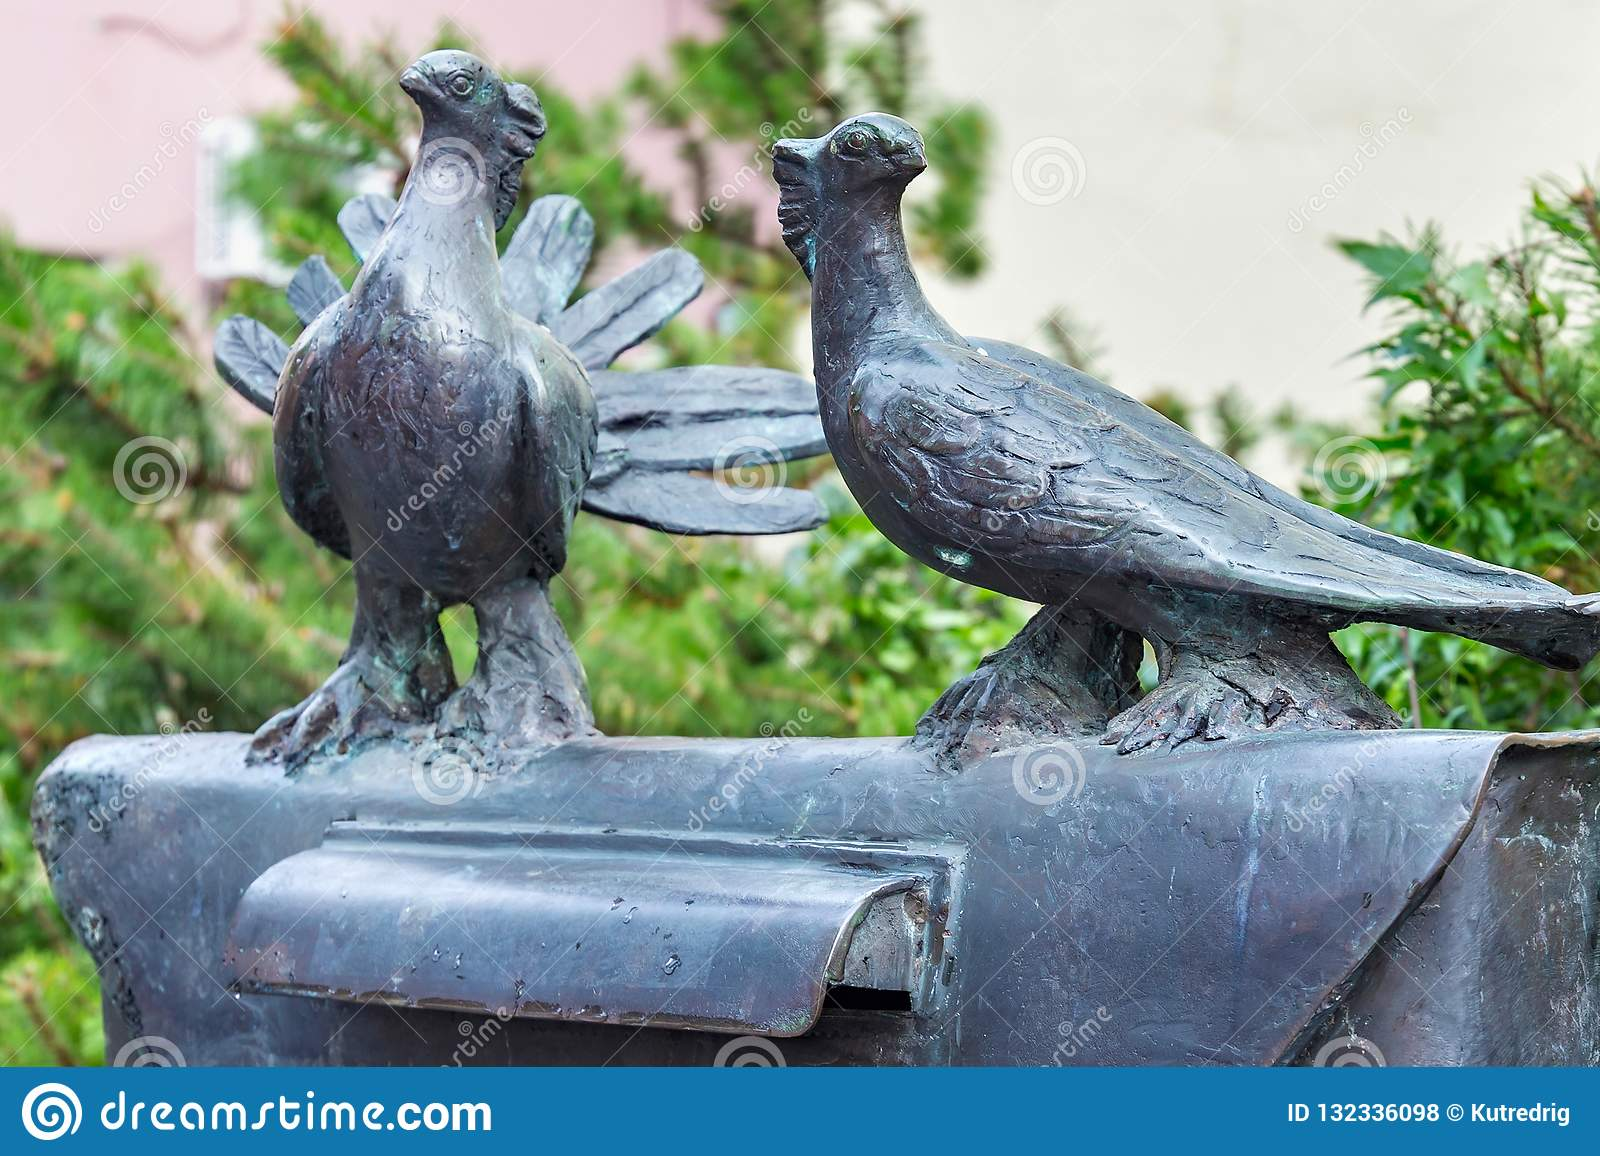 KLAIPEDA, LITHUANIA - SEPTEMBER 22, 2018: Sculptural composition with a mailbox and post pigeons in Klaipeda.